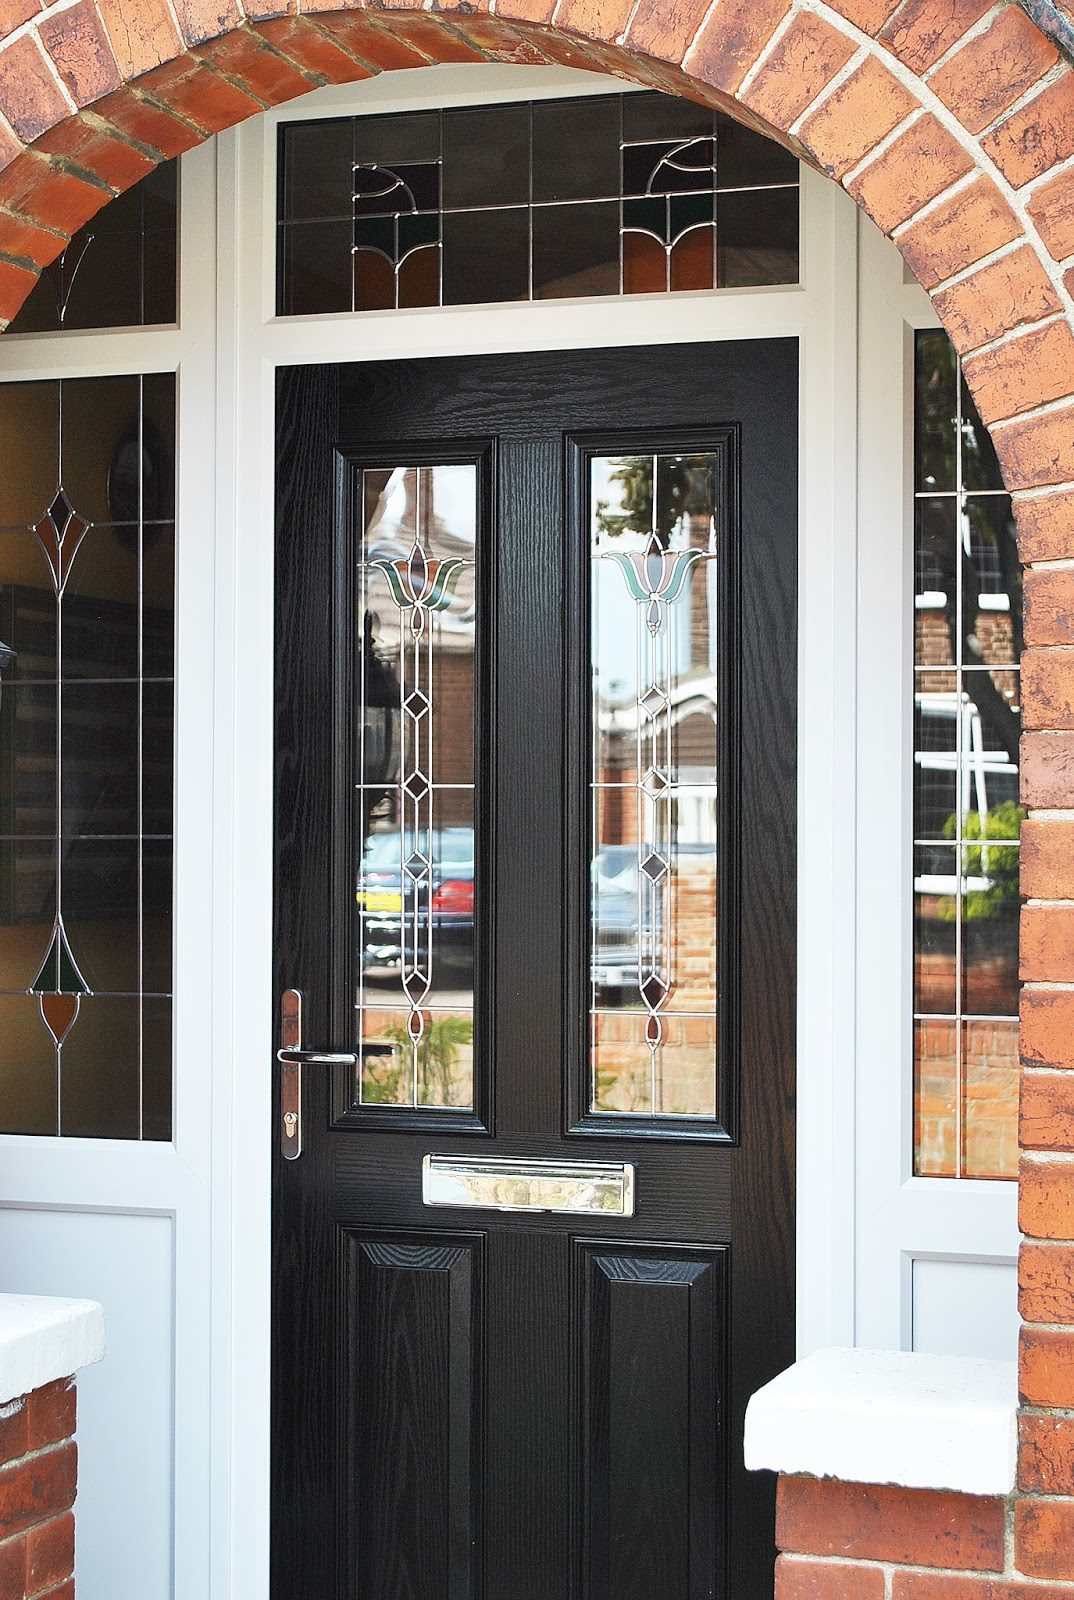 A stunning renovation altmore composite upvc rehau frames for Composite windows